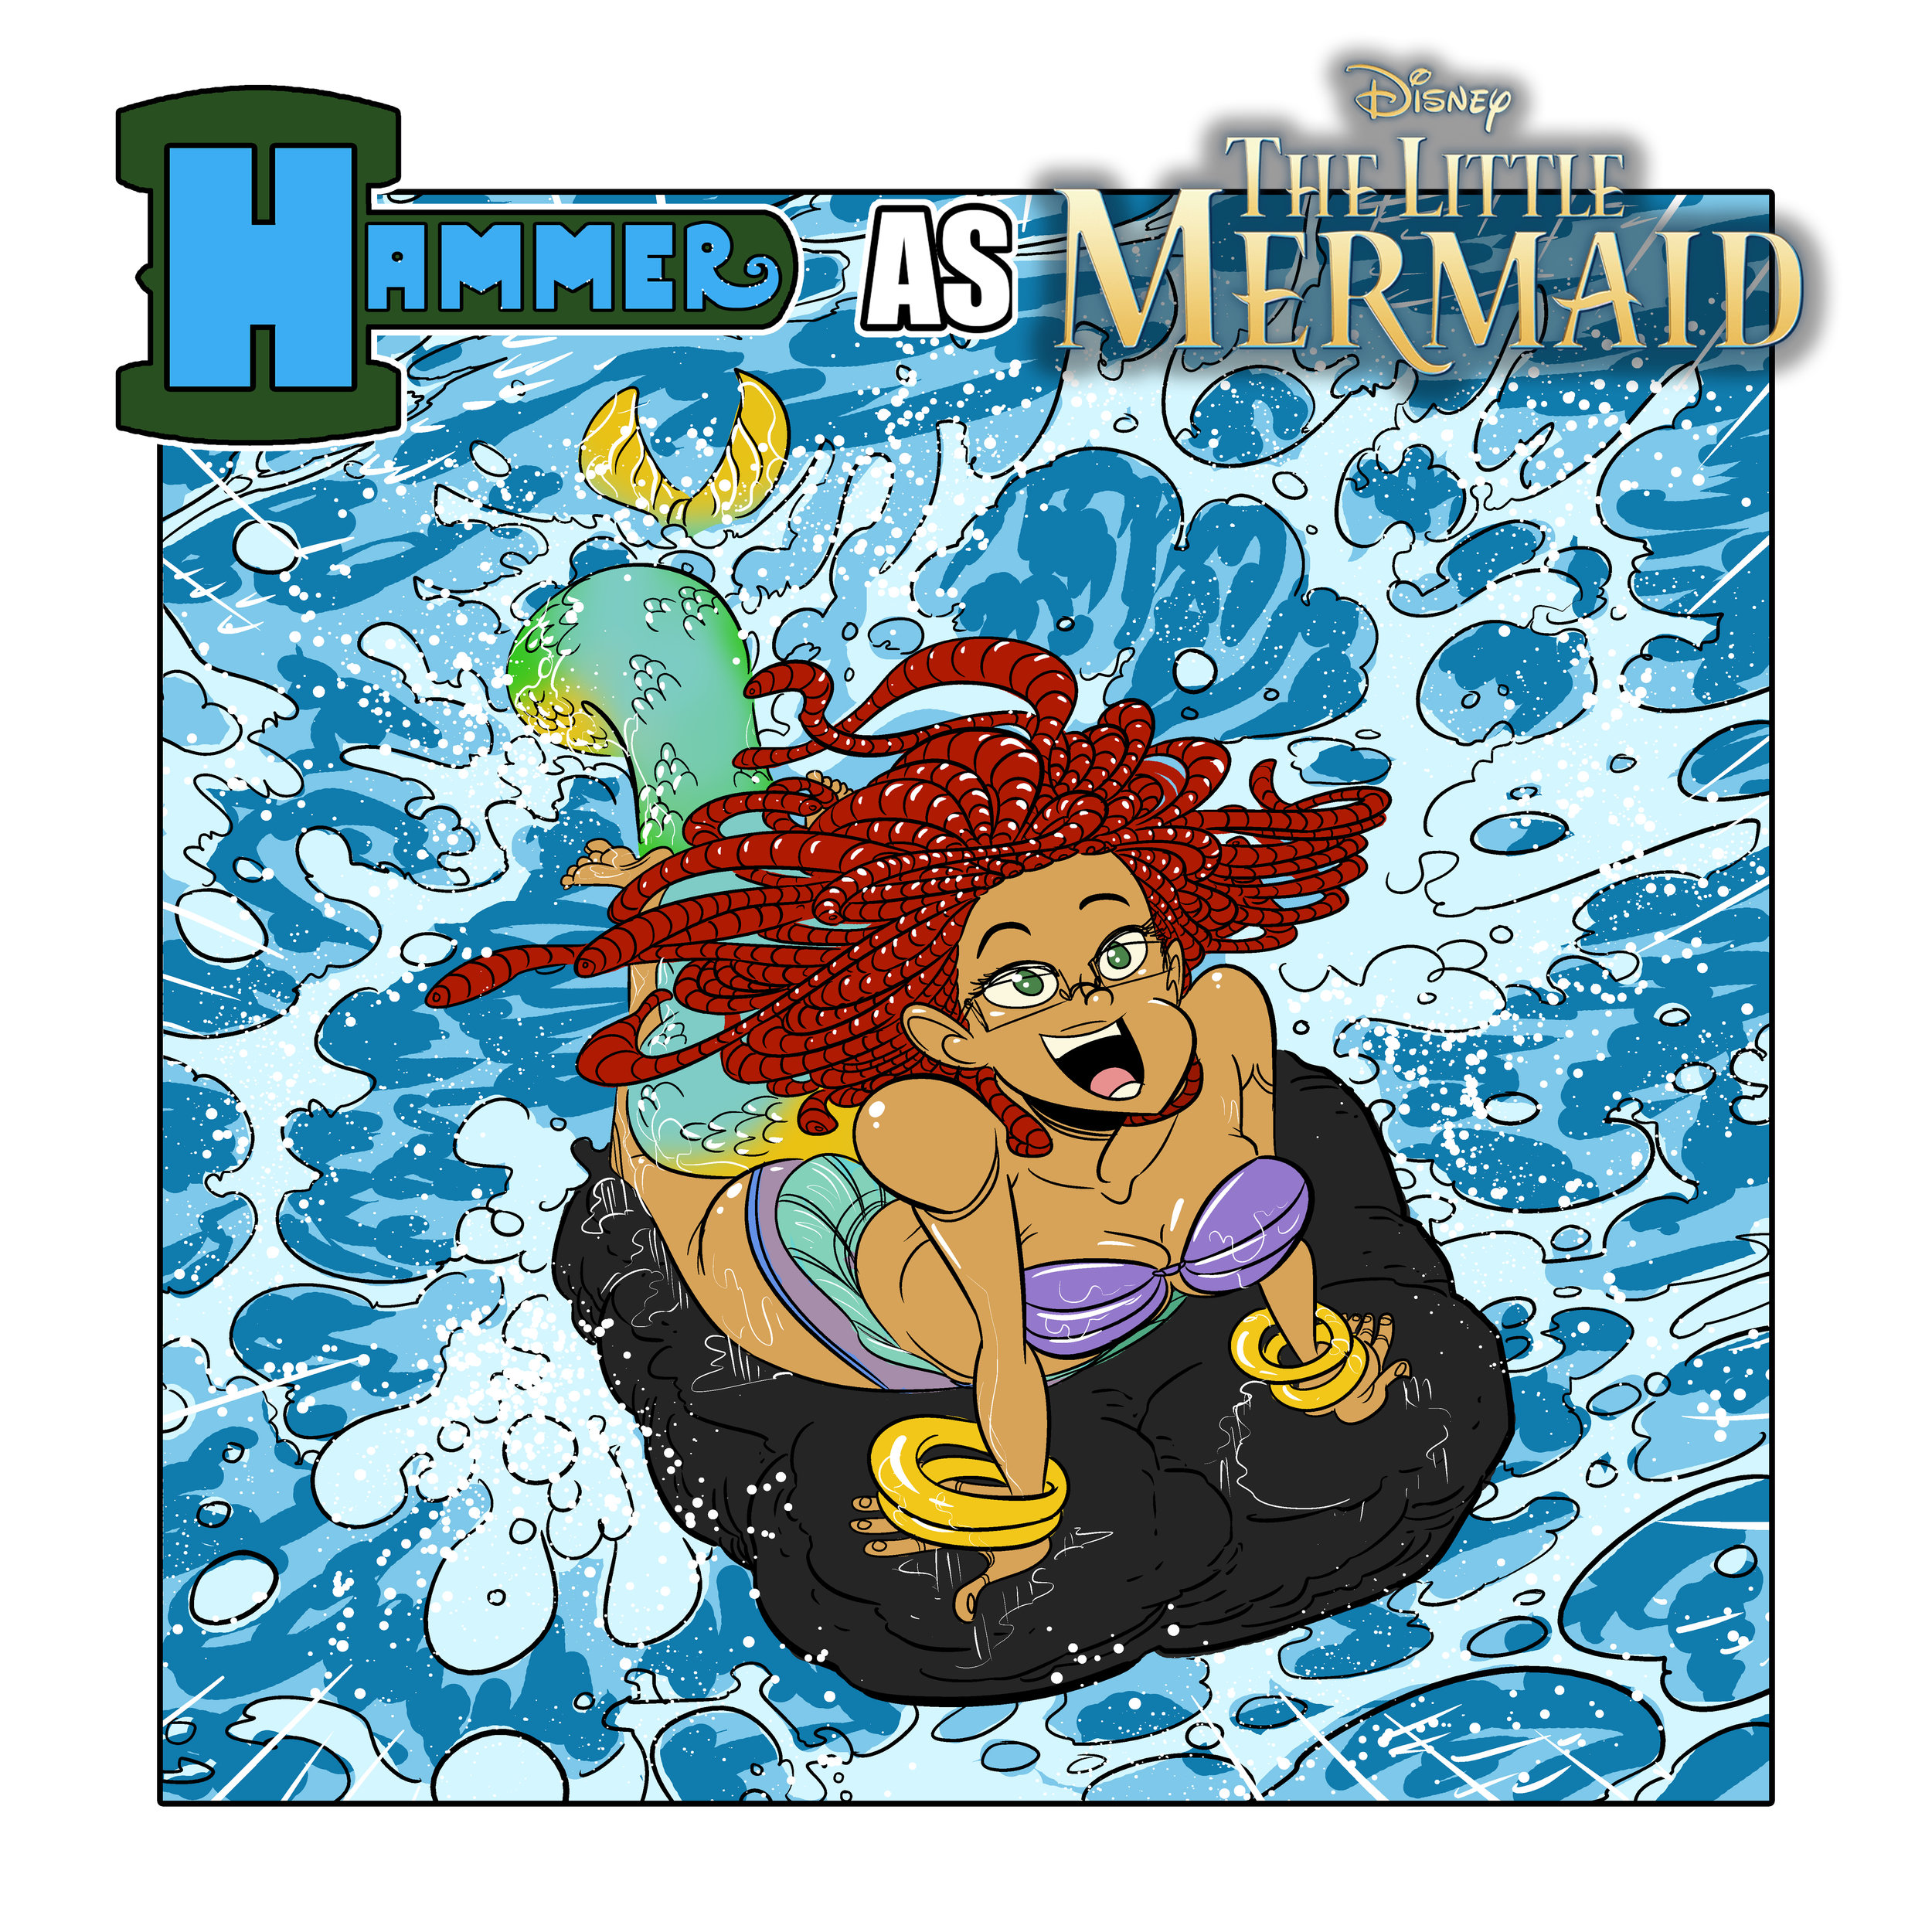 HAMMER AS THE LITTLE MERMAID.jpg